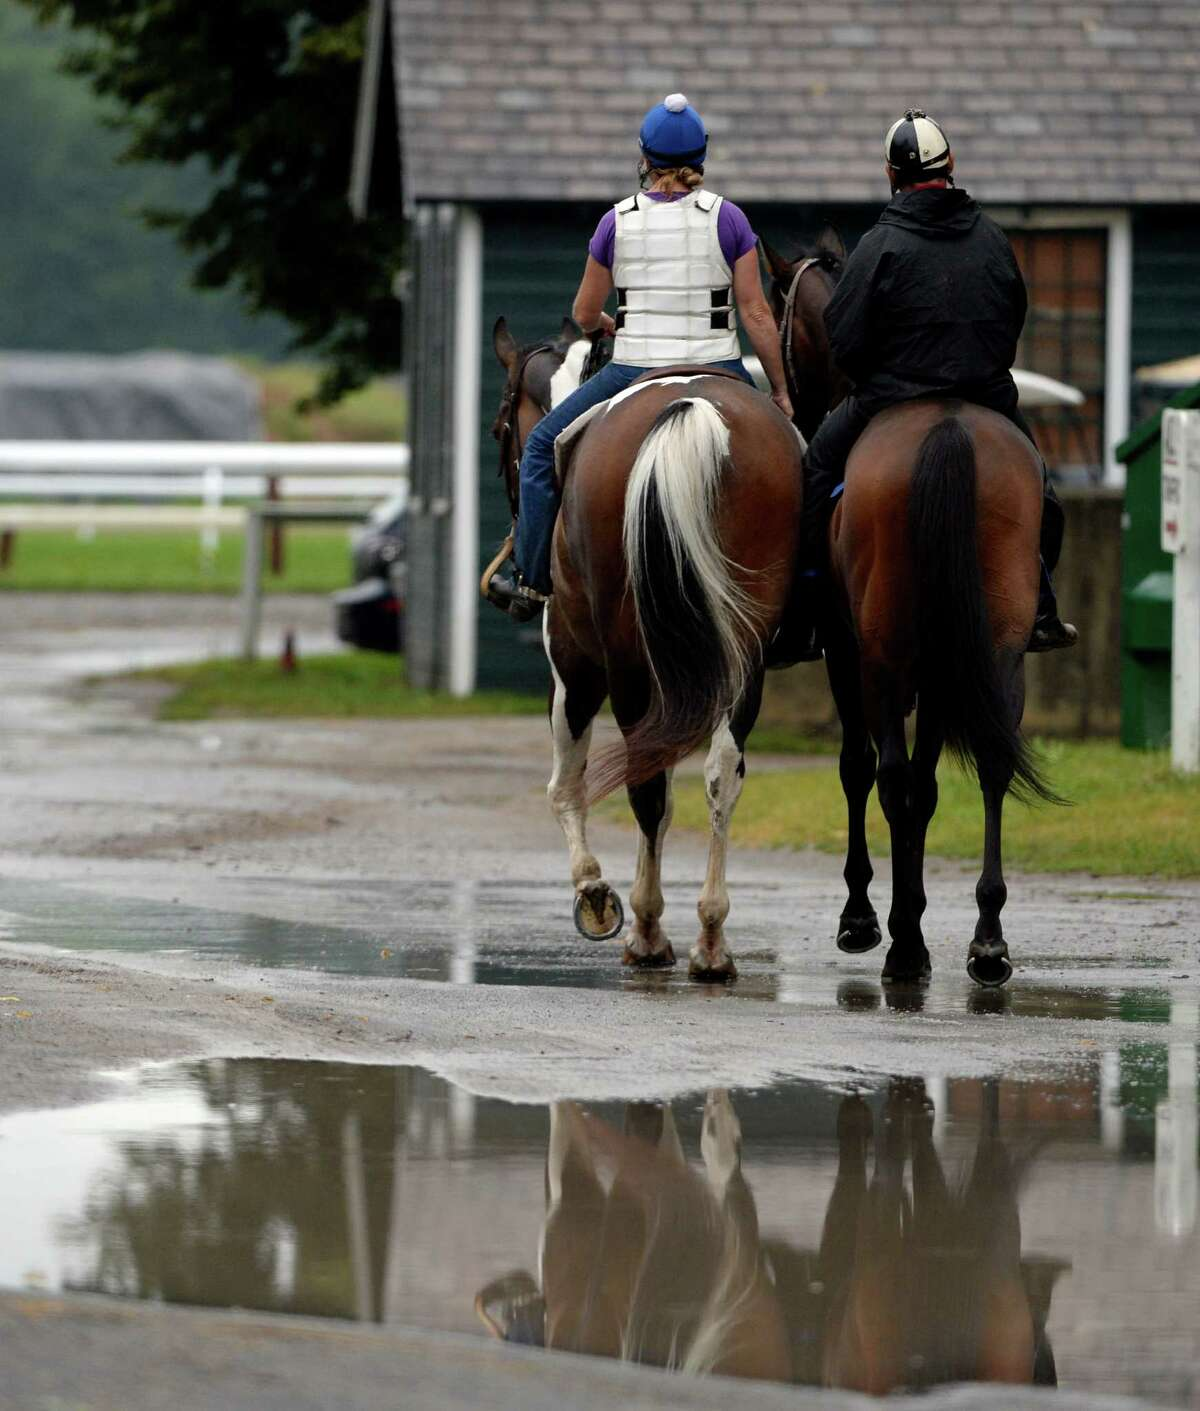 Horses dodge the puddles on the way to the track for their exercise after heavy rains hit the area Monday morning, July 28, 2014, at the Oklahoma Training Center in Saratoga Springs, N.Y. (Skip Dickstein / Times Union)